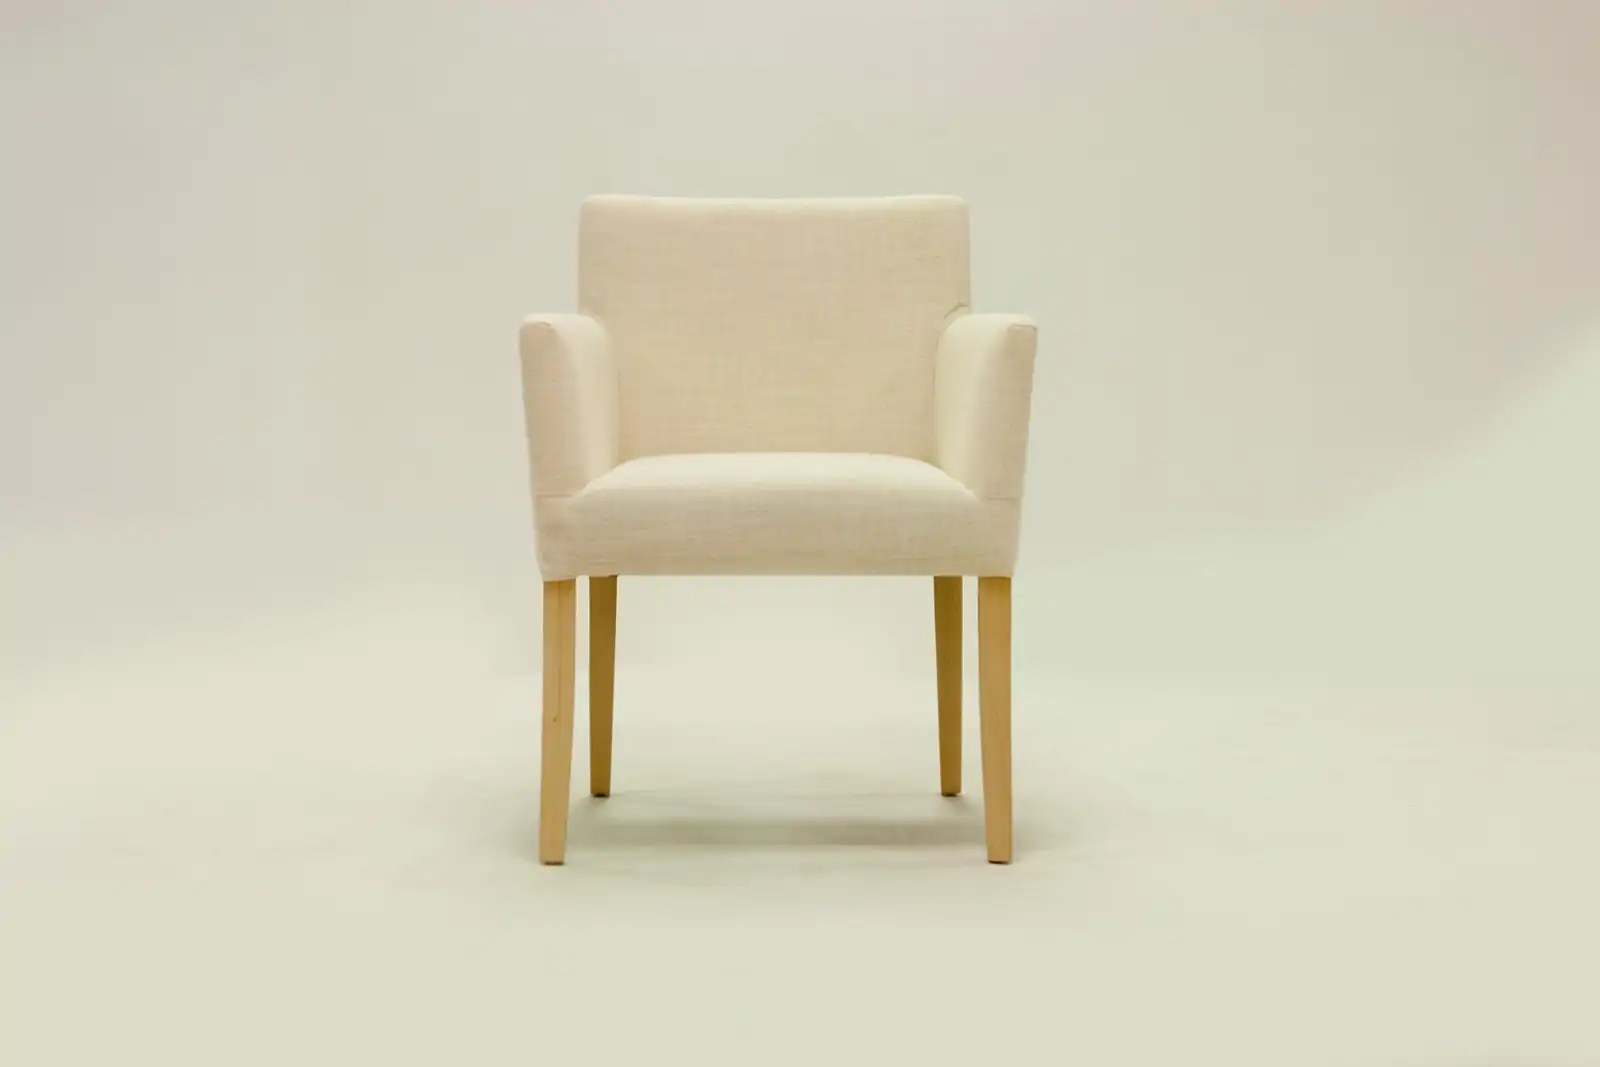 Crearte Collections Comodo Chair Contemporain